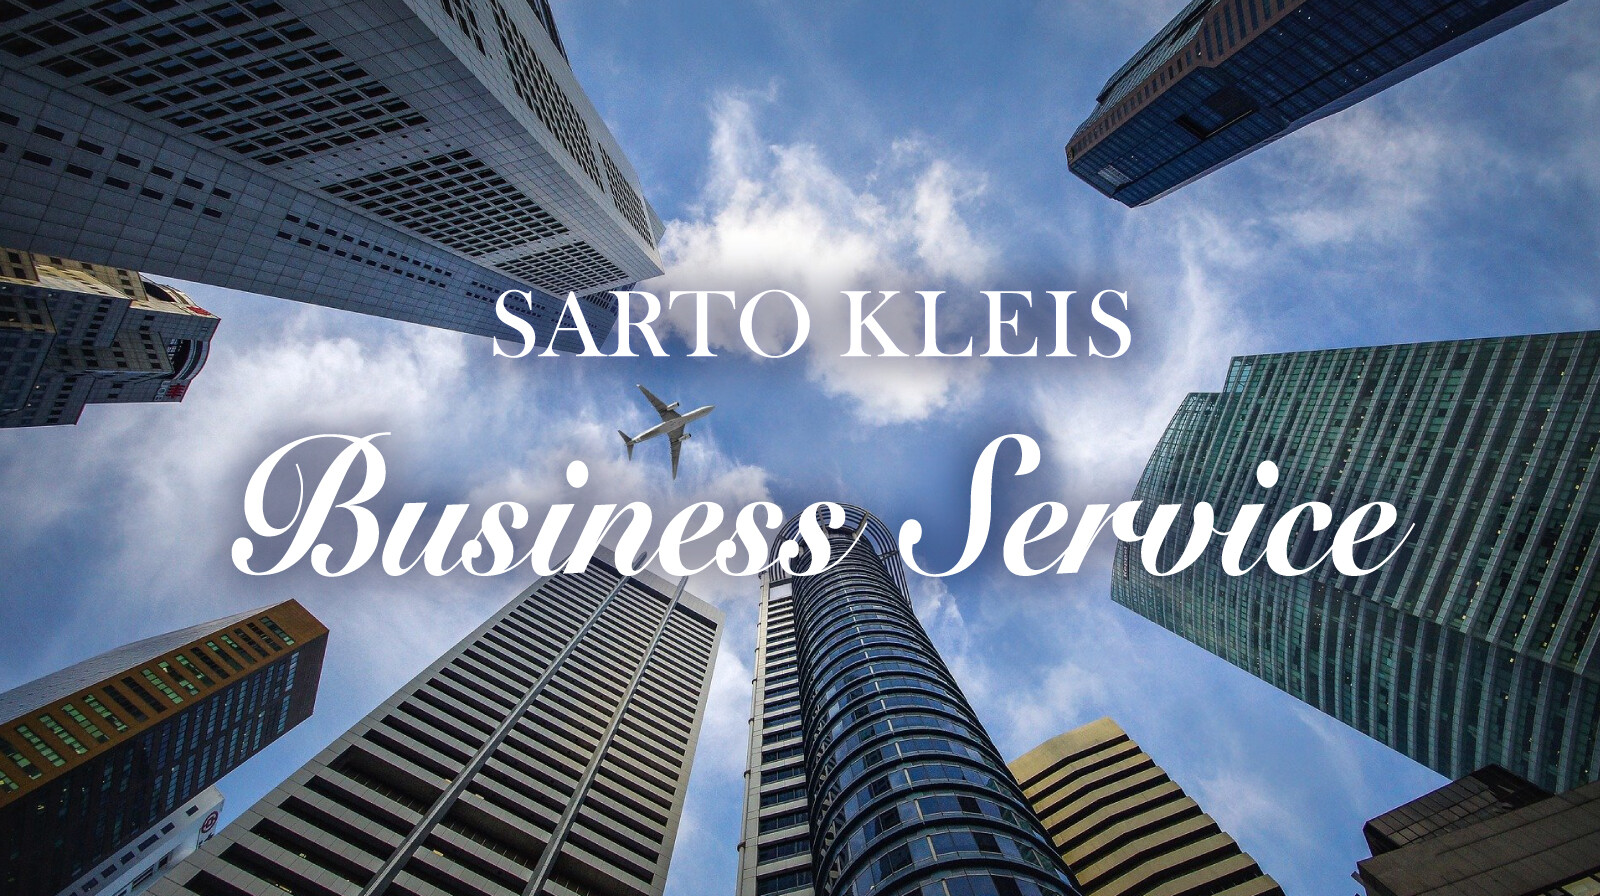 business service title - SARTO KLEIS Business Service